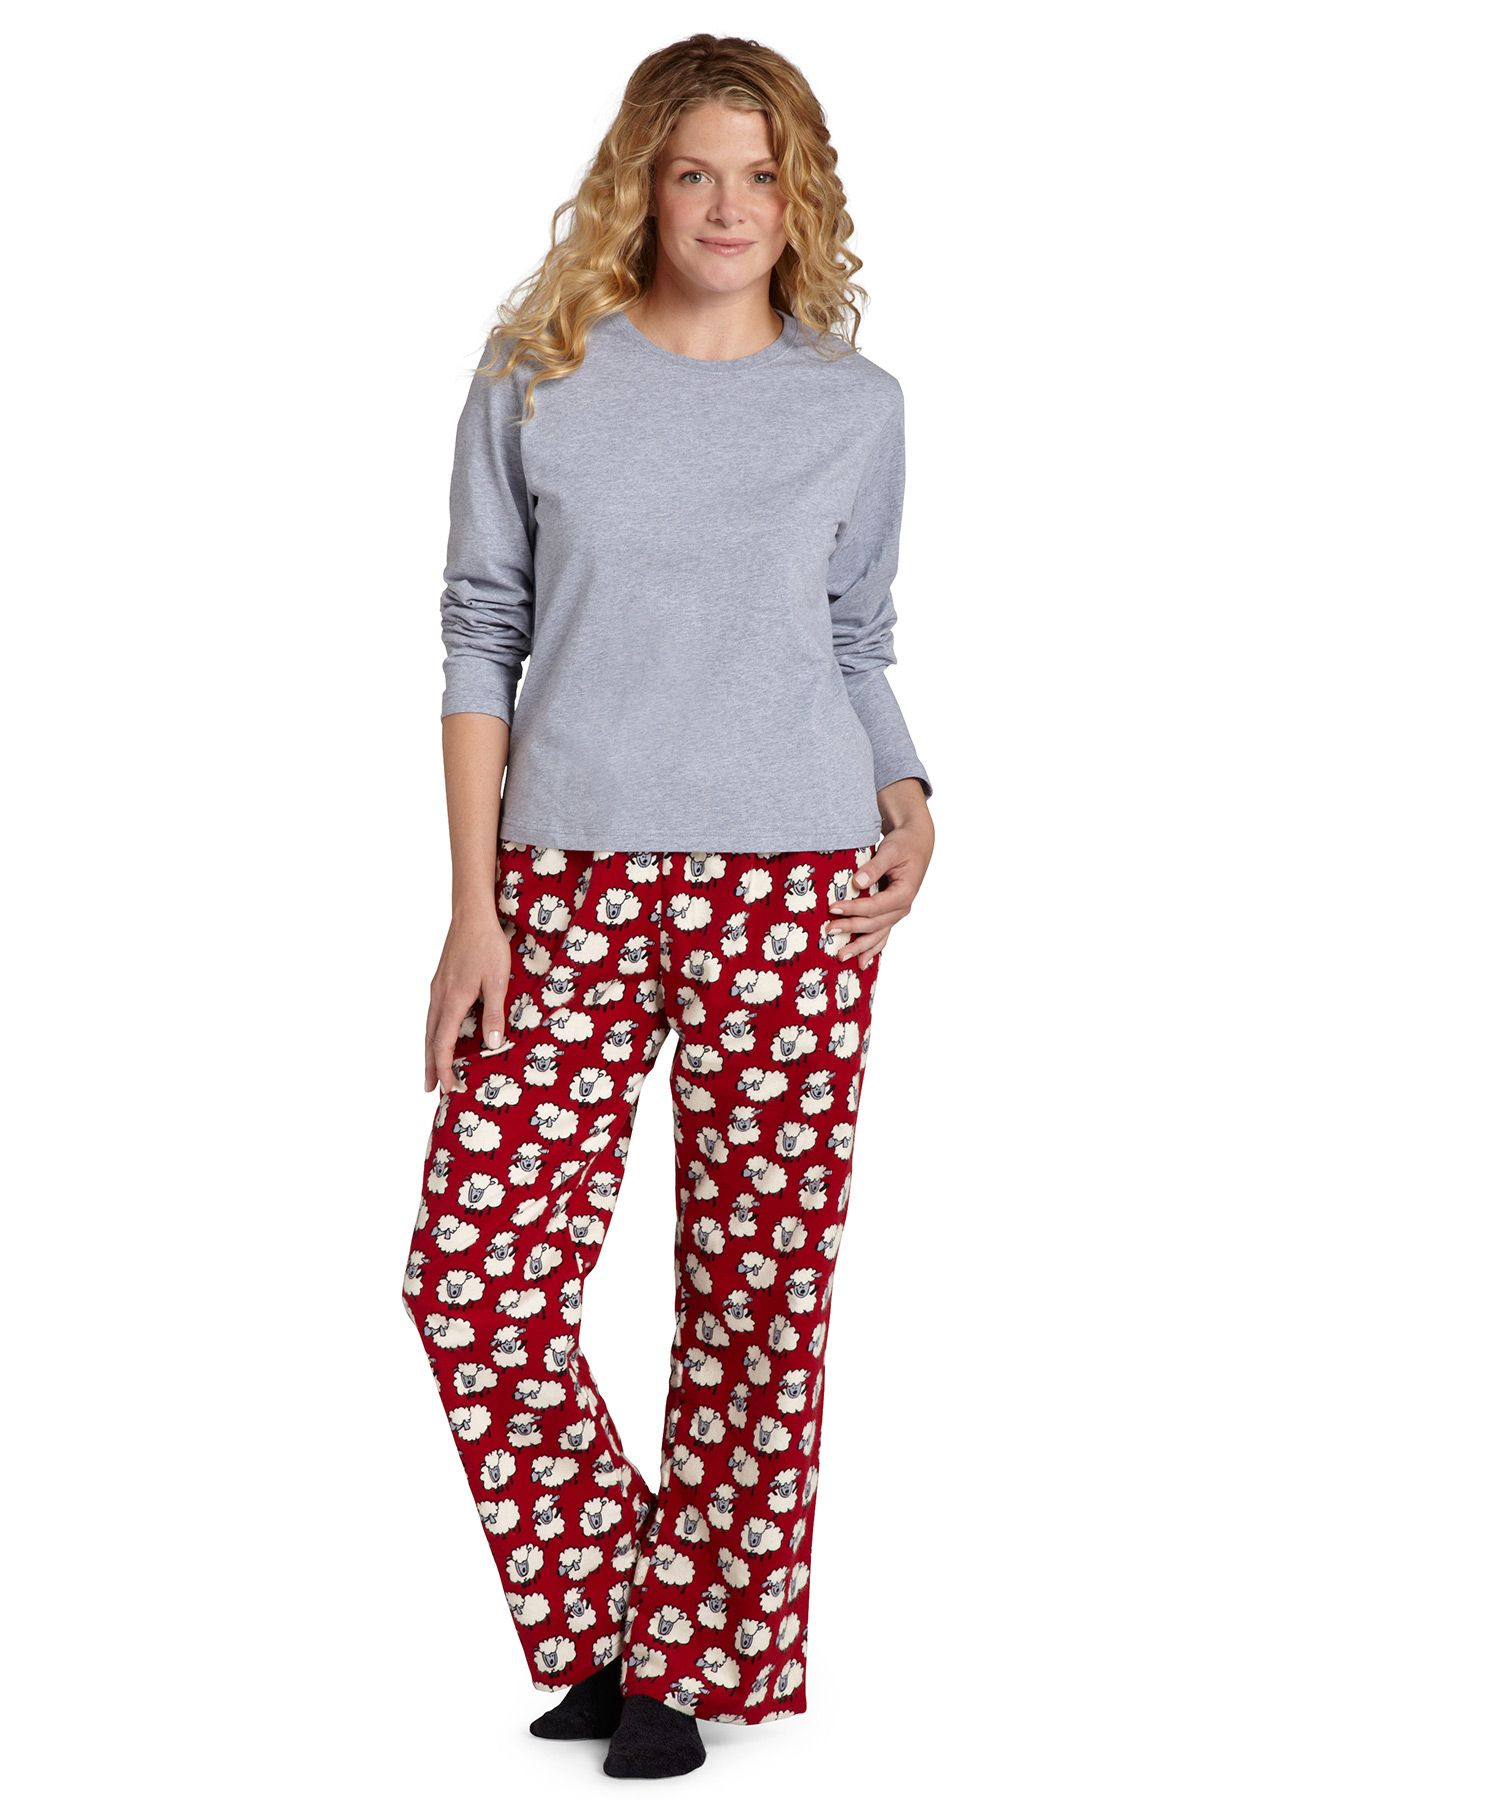 Gift Ideas for 50 or less Women's Cozy Flannel Printed